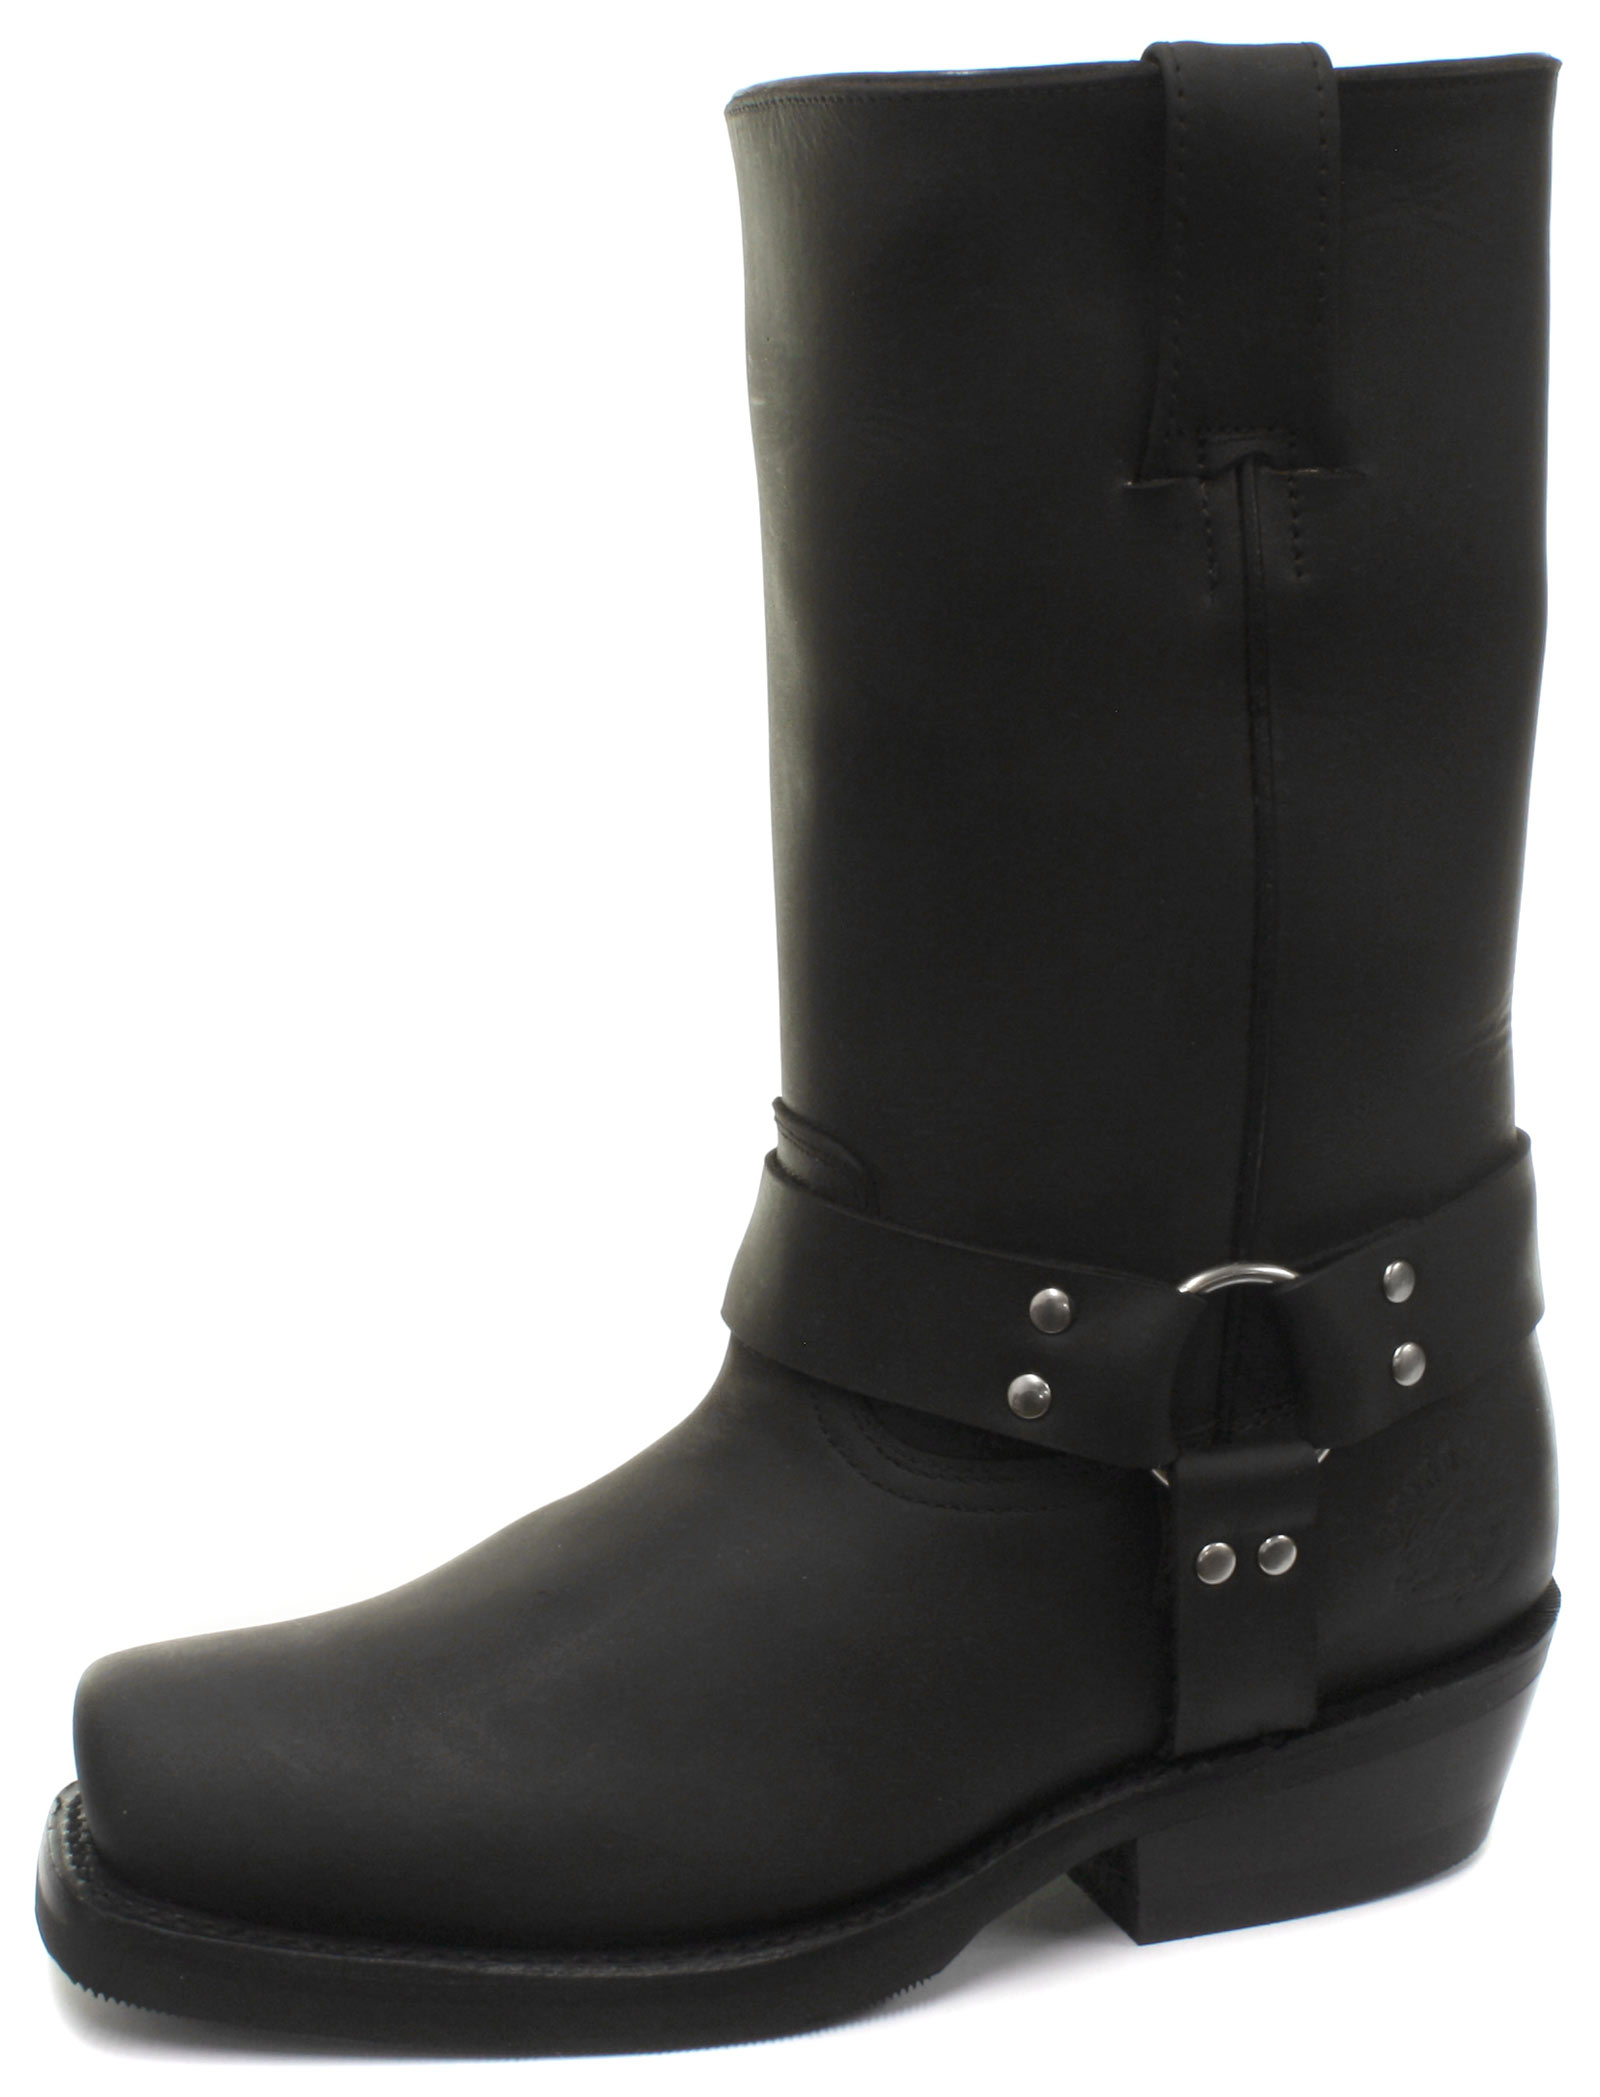 New Stiefel Grinders Abilene Damenschuhe Western Biker Stiefel New ALL SIZES AND COLOURS 9c1171